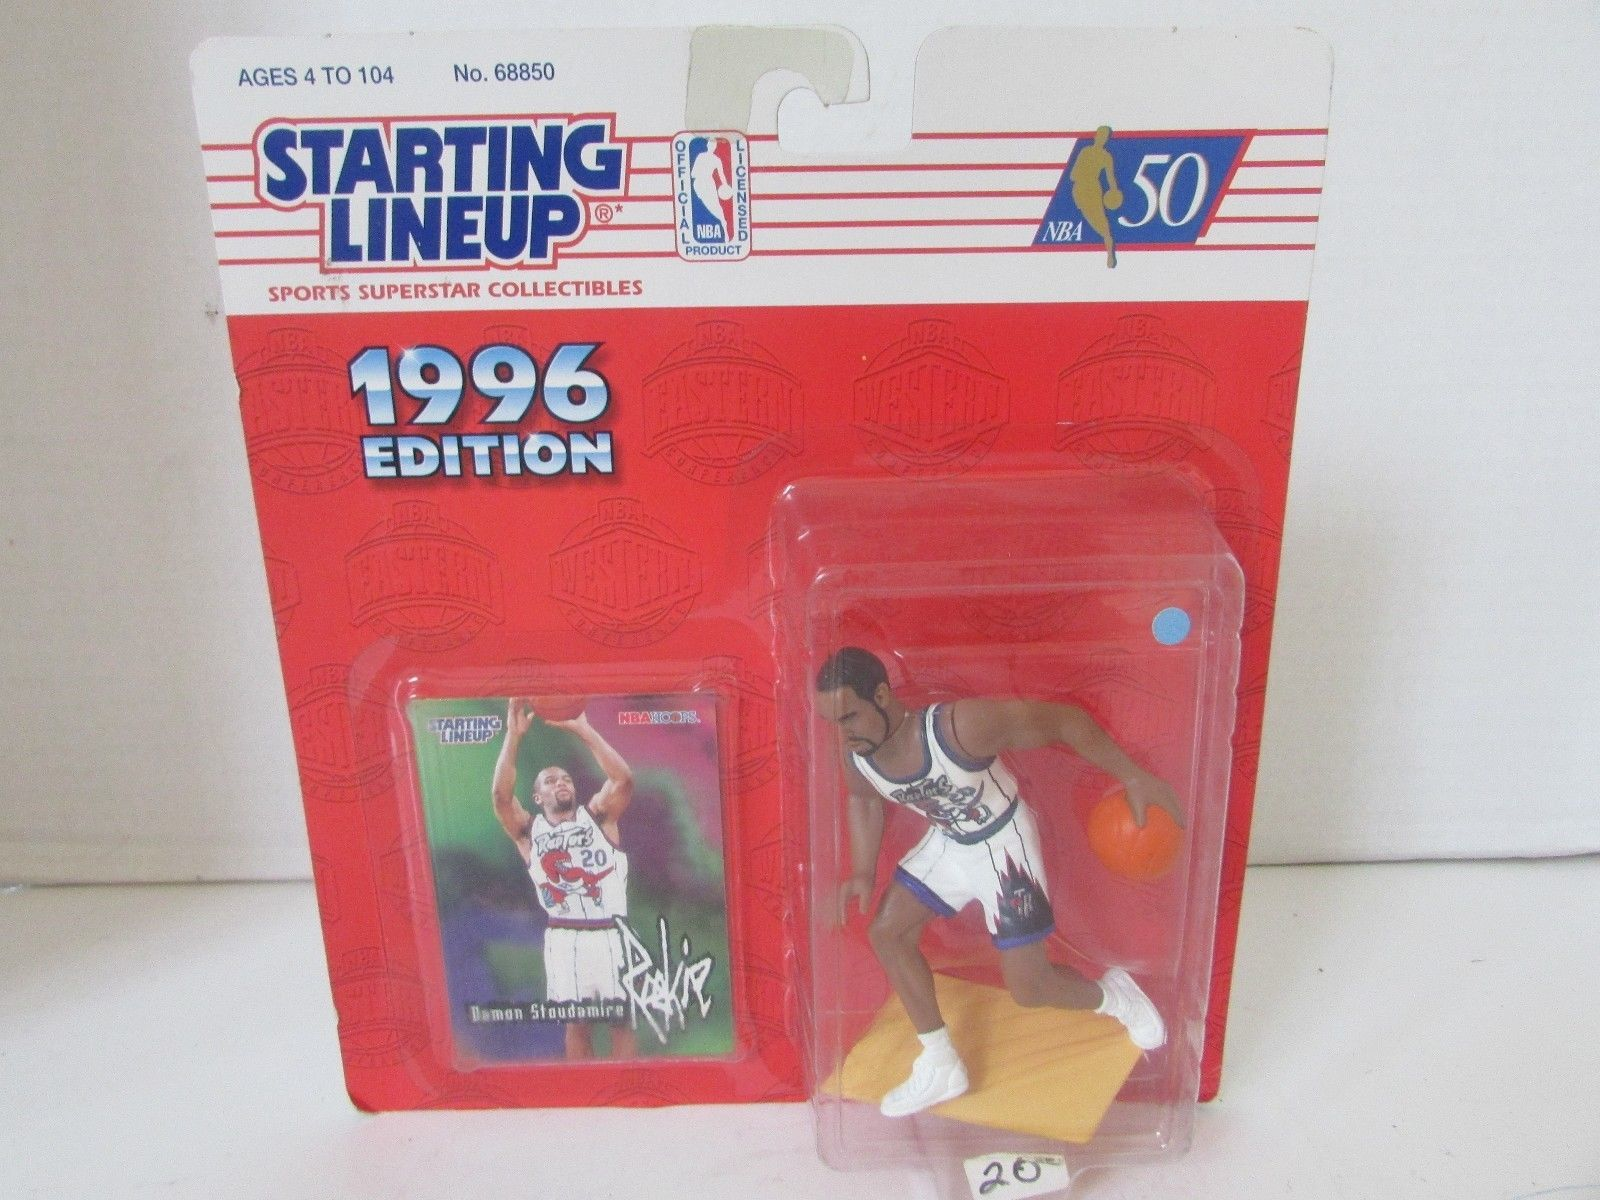 NBA KENNER 1996 DAMON STOUDAMIRE ROOKIE ACTION FIGURE BASKETBALL  L227